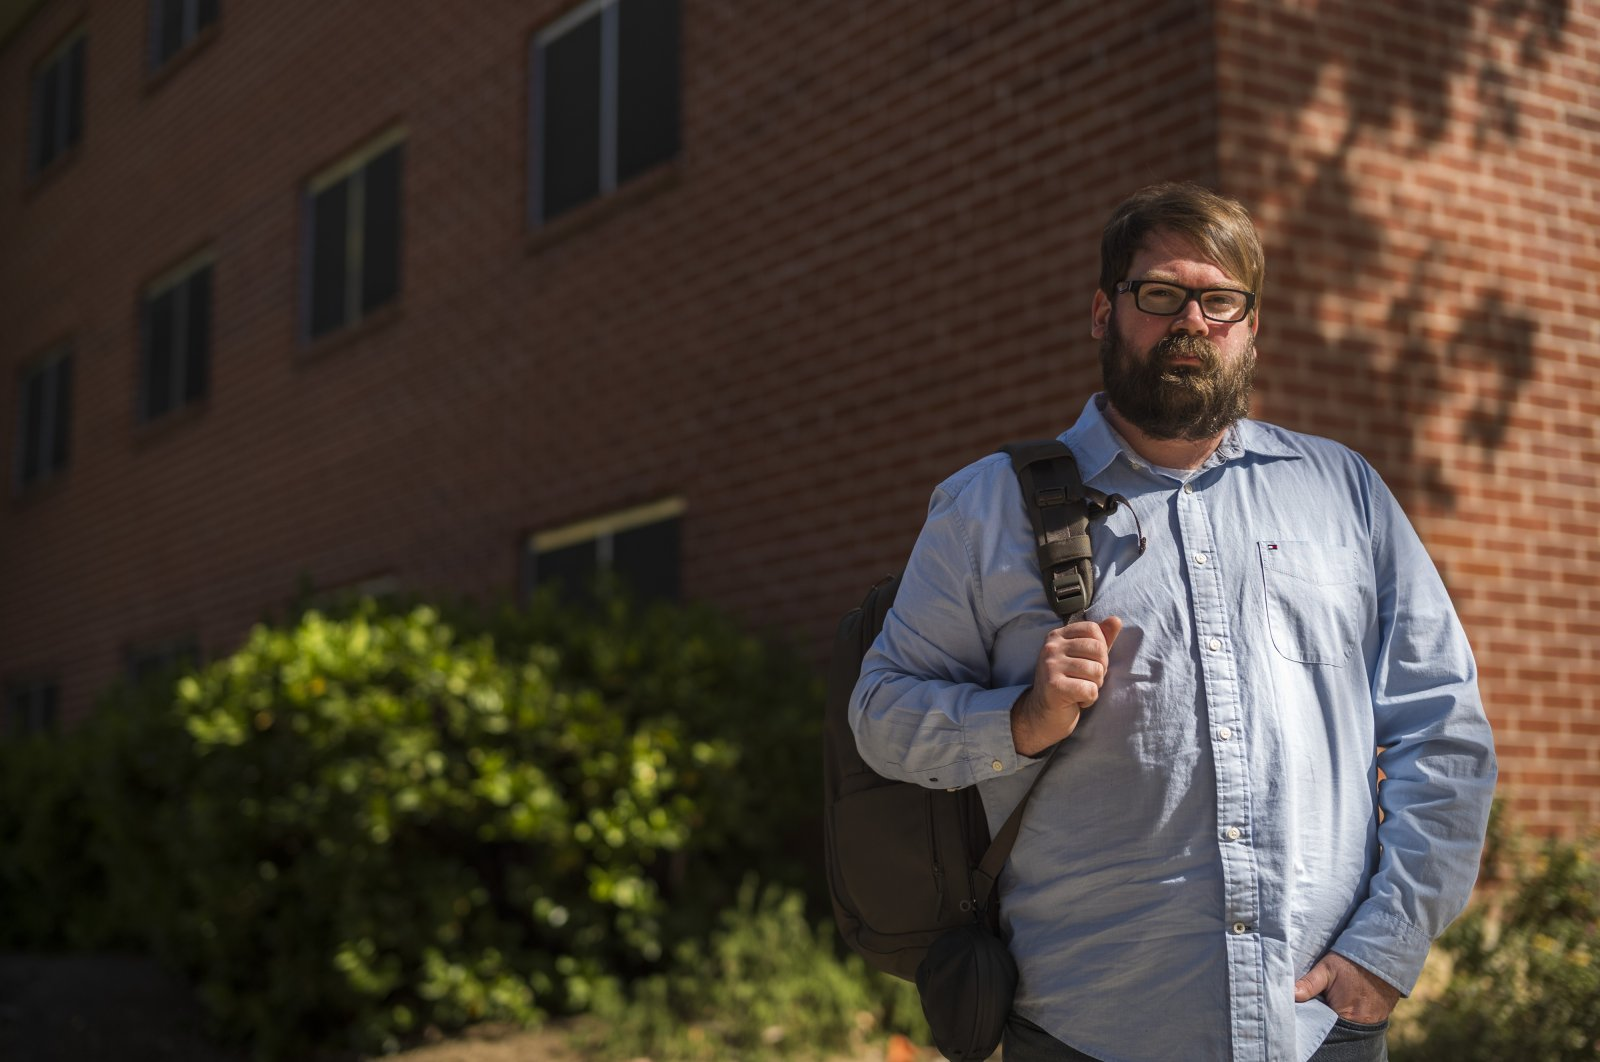 Chris Lambert, a musician and recording engineer, poses for a photograph, in front of Muir Hall dormitory at California Polytechnic University in San Luis Obispo, California, U.S., April 15, 2021. (AP Photo)